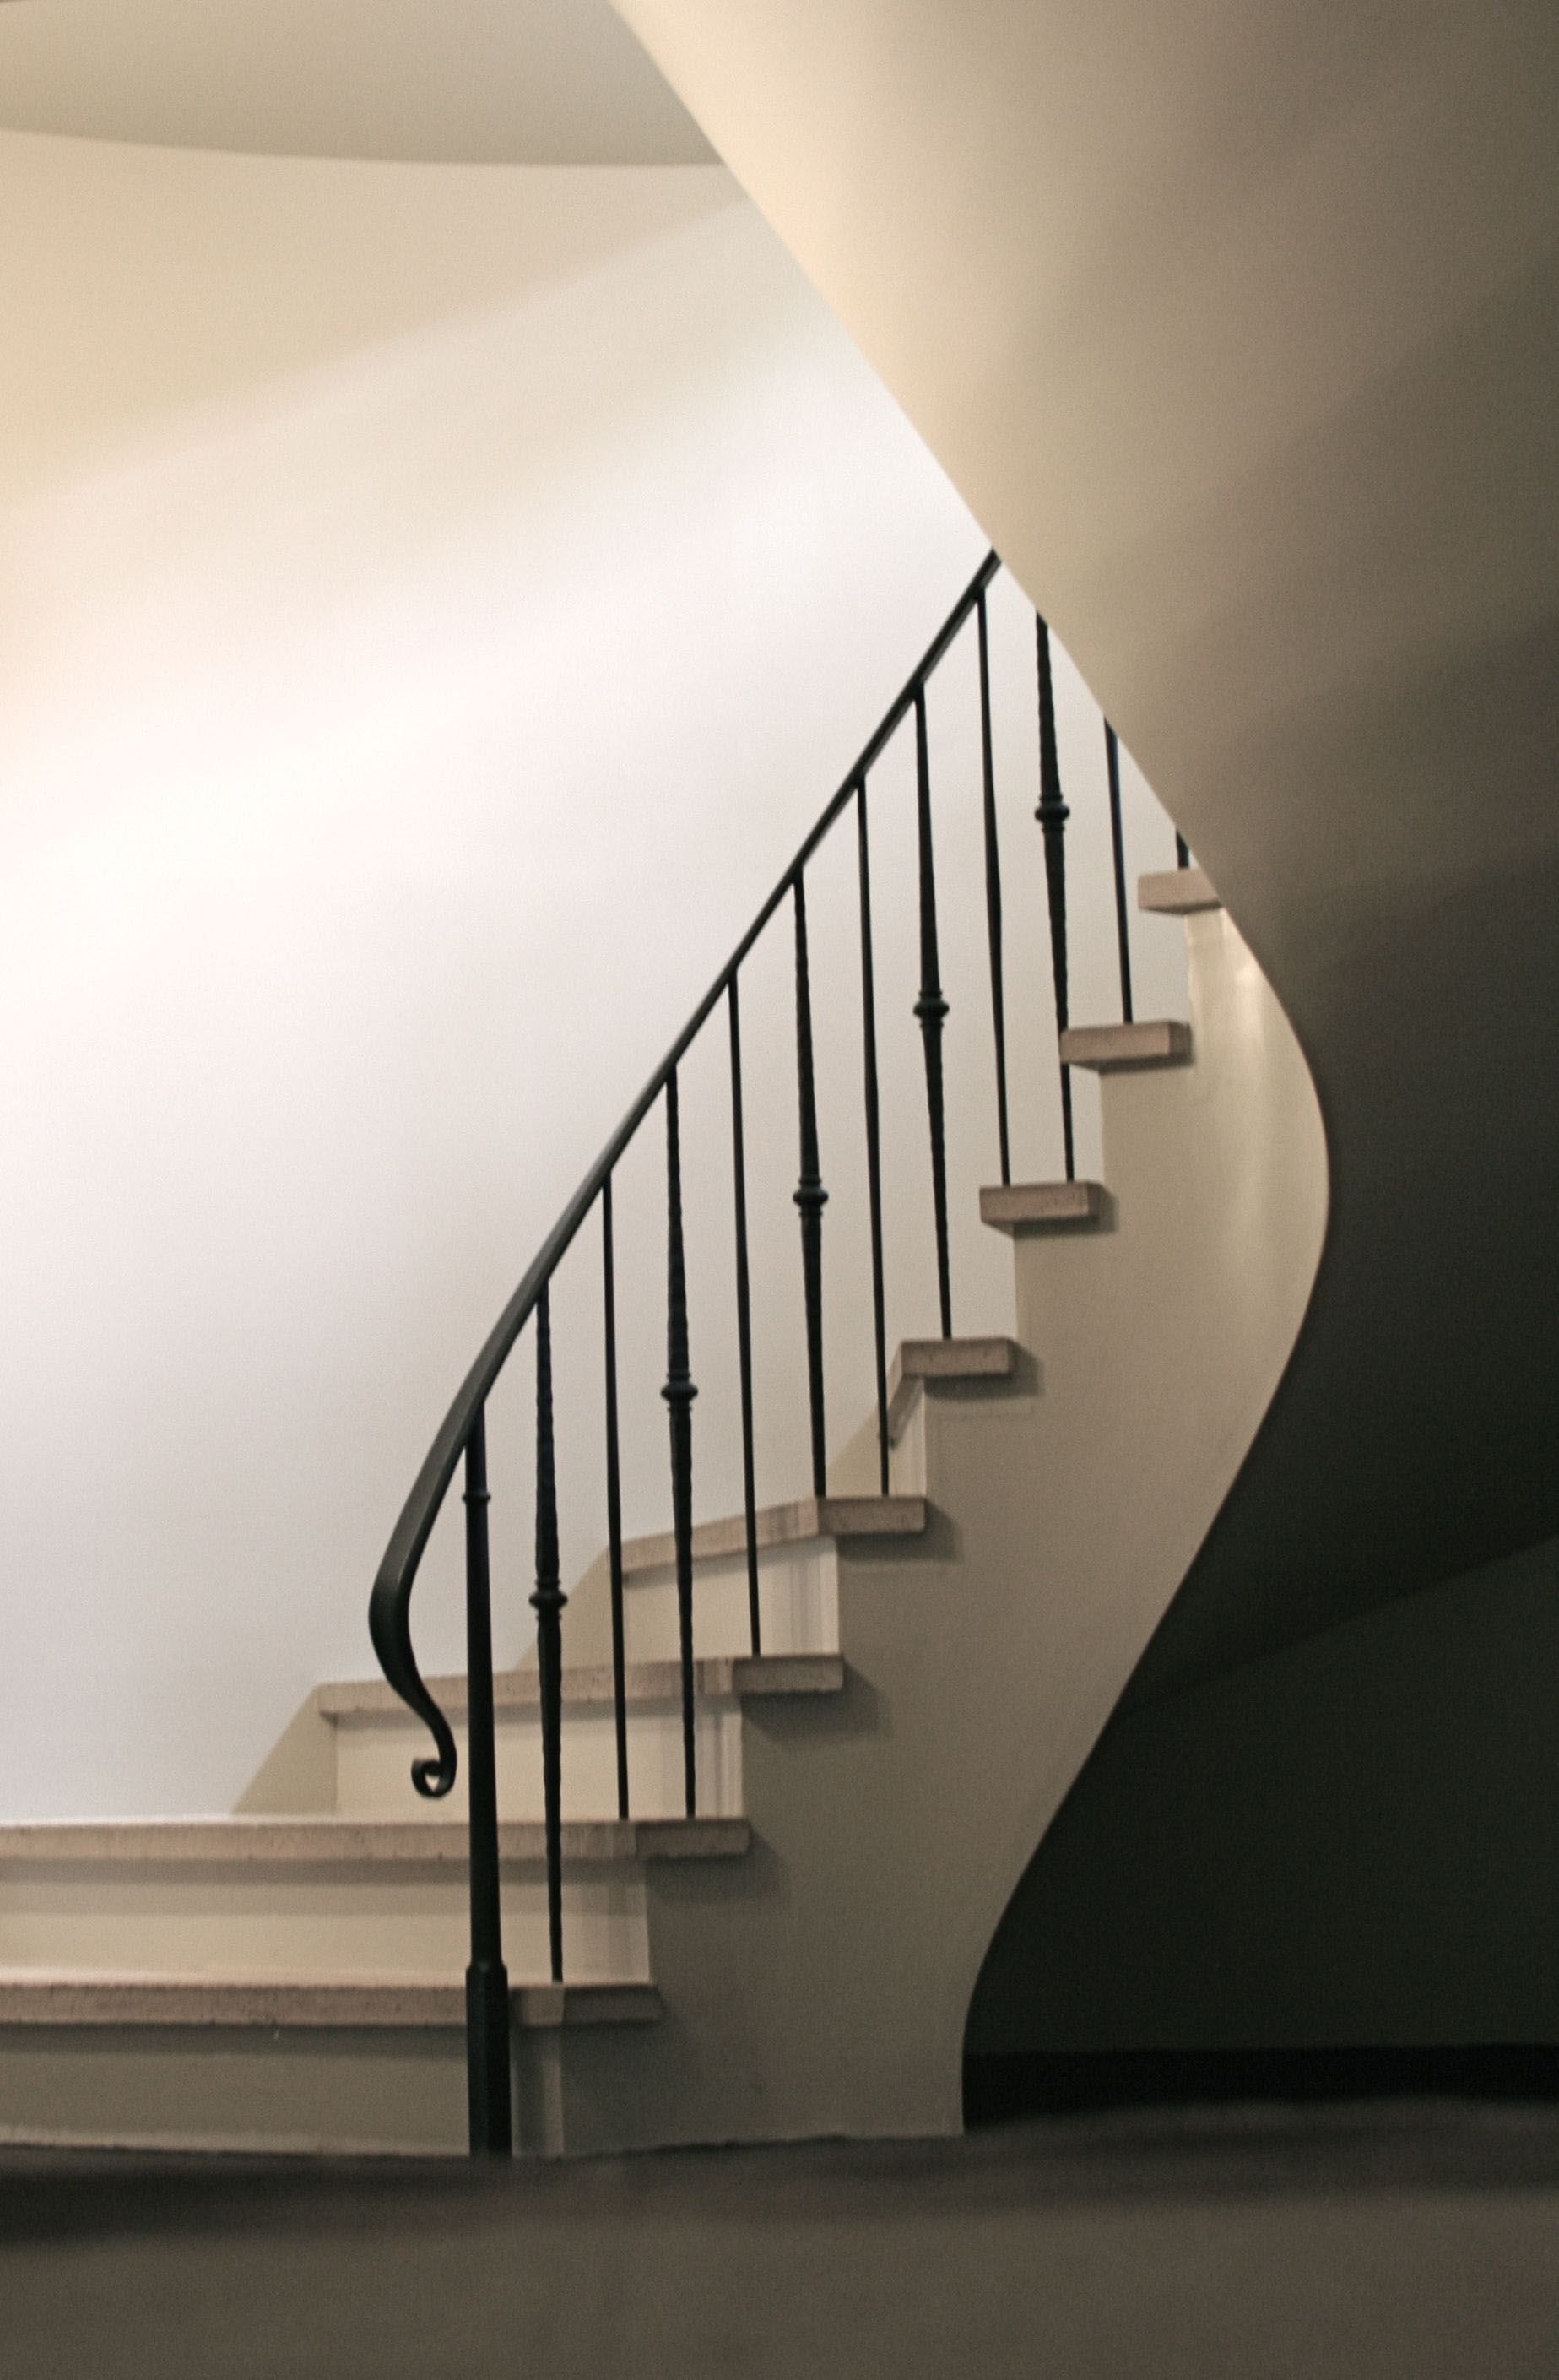 Superior Split Level Stair Railing Ideas Only On Interioropedia Com With Images Iron Stair Railing Stair Railing Design Wrought Iron Stair Railing